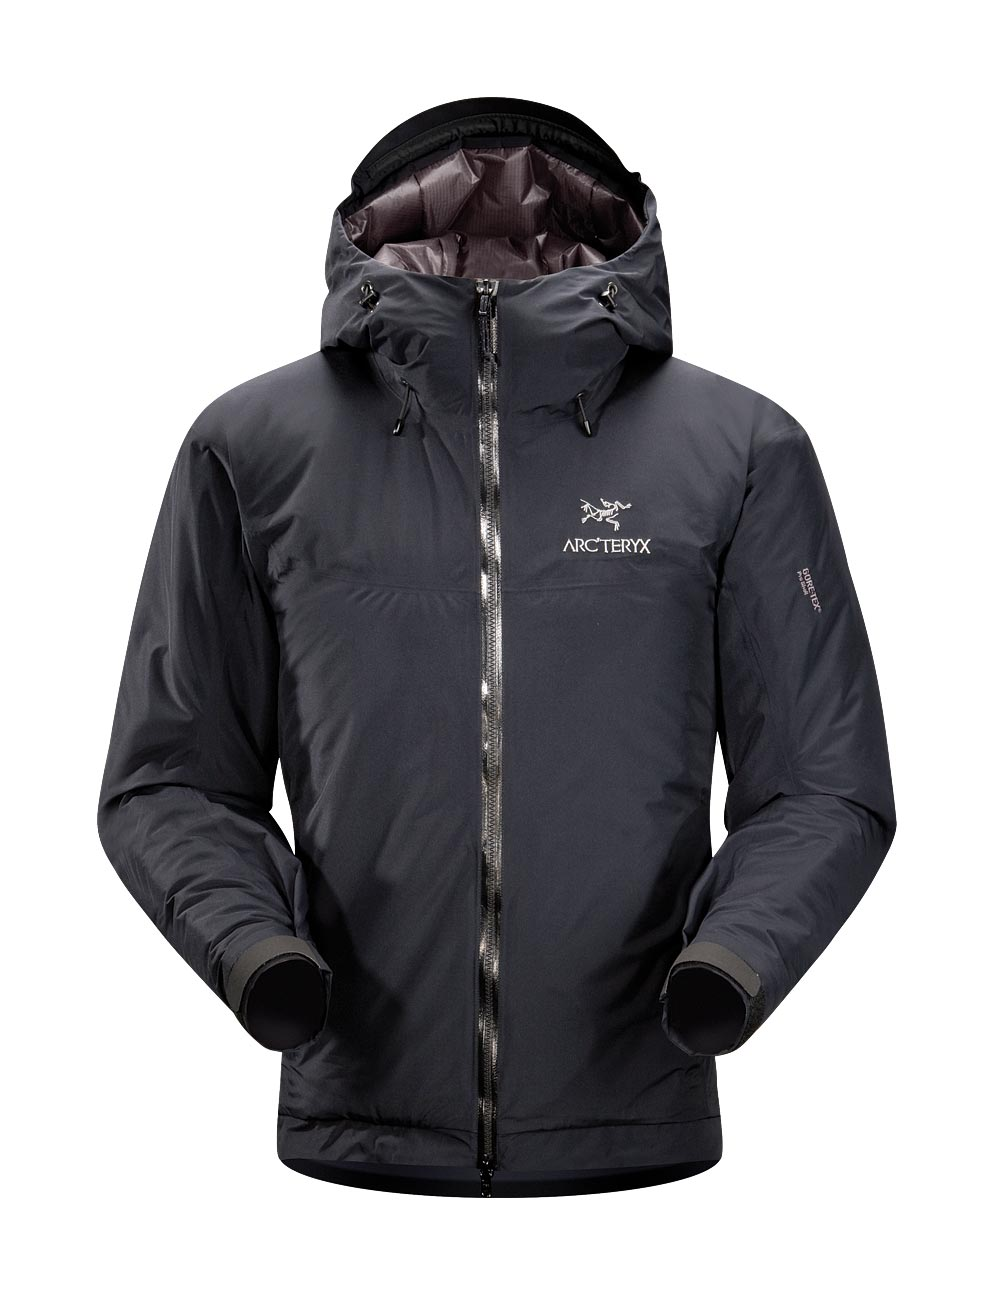 Arcteryx Black Alpha FL Jacket